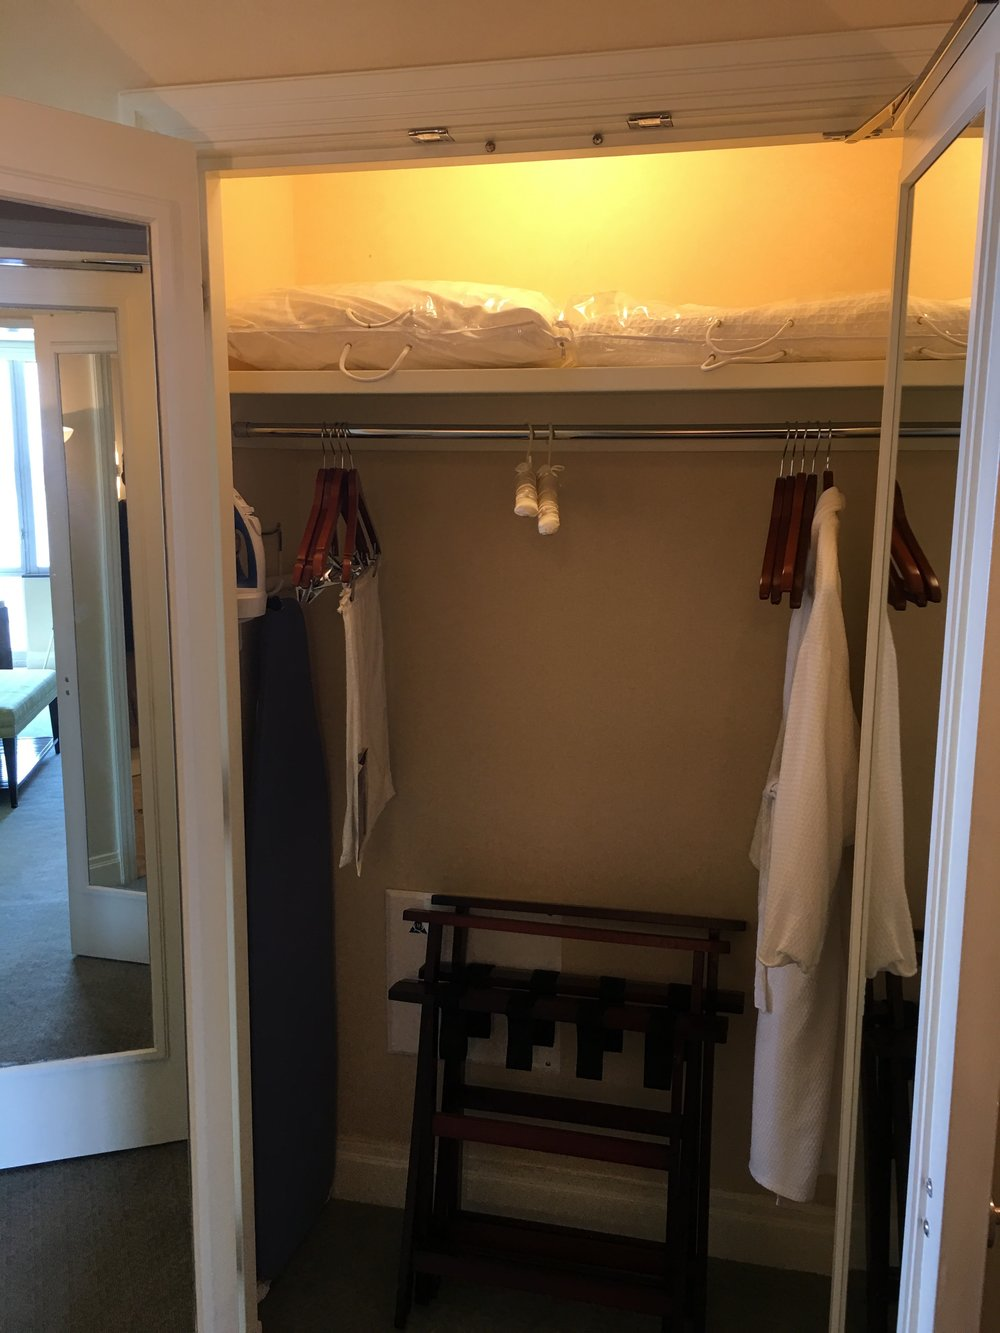 Closet was spacious and included extra robes, ironing board, and linens.